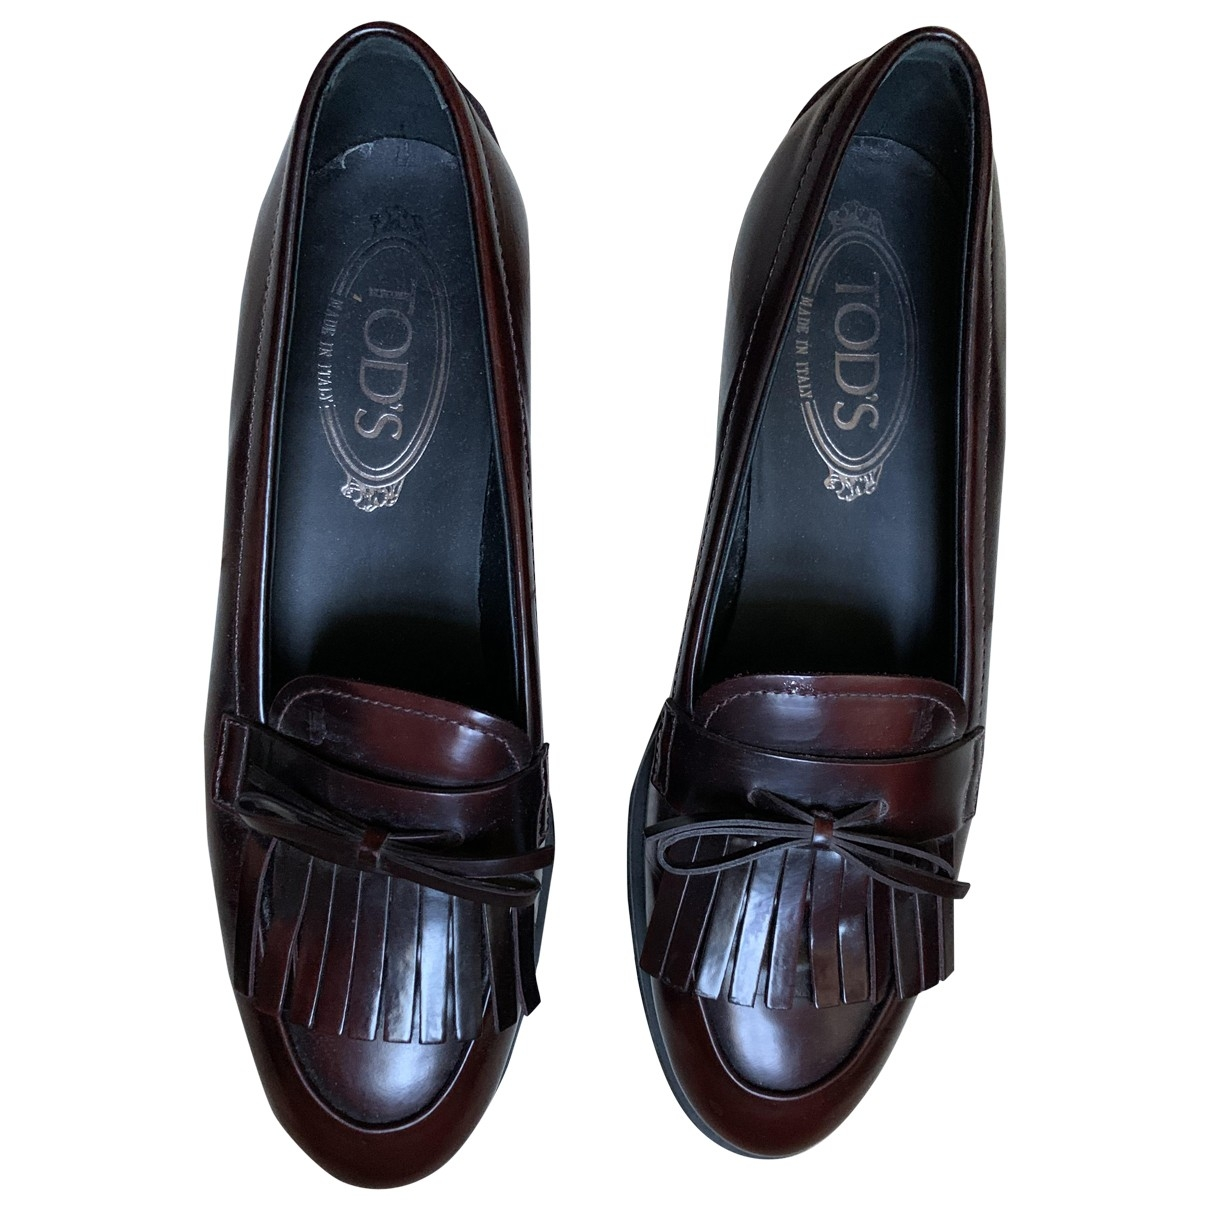 Tod's Gommino Burgundy Leather Flats for Women 36.5 EU